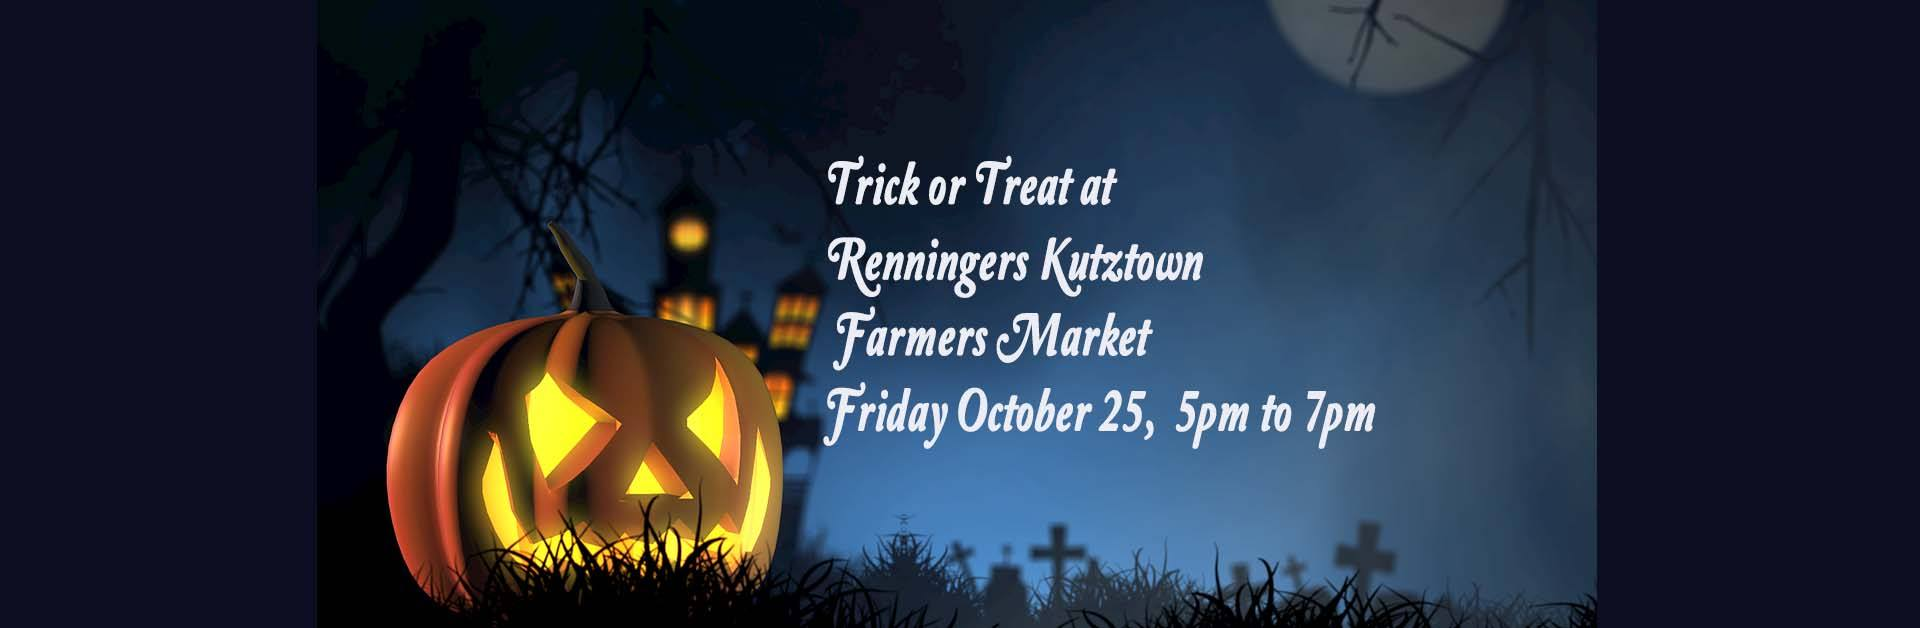 Trick or Treat Night, October 25th (Kutztown, PA)